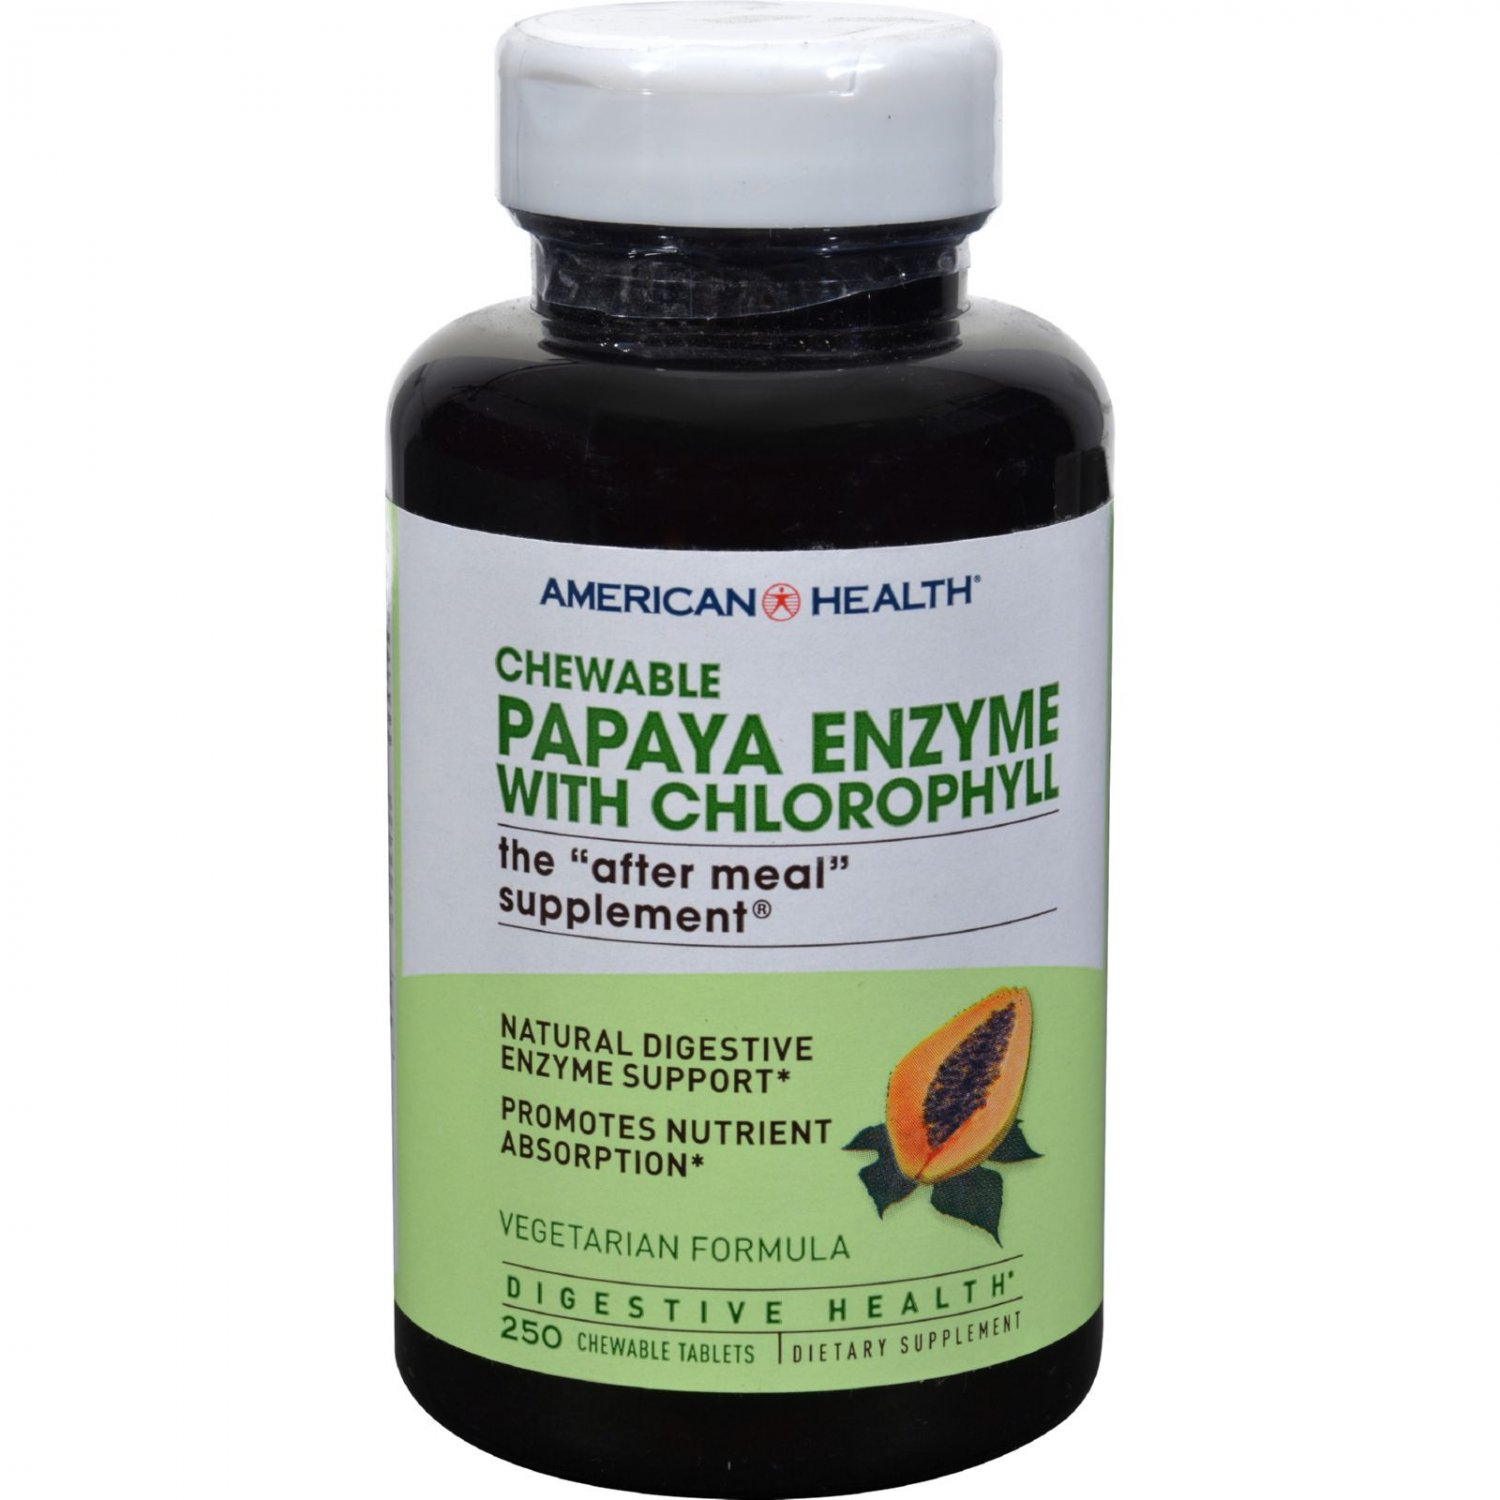 American Health Papaya Enzyme with Chlorophyll Chewable - 250 Tablets